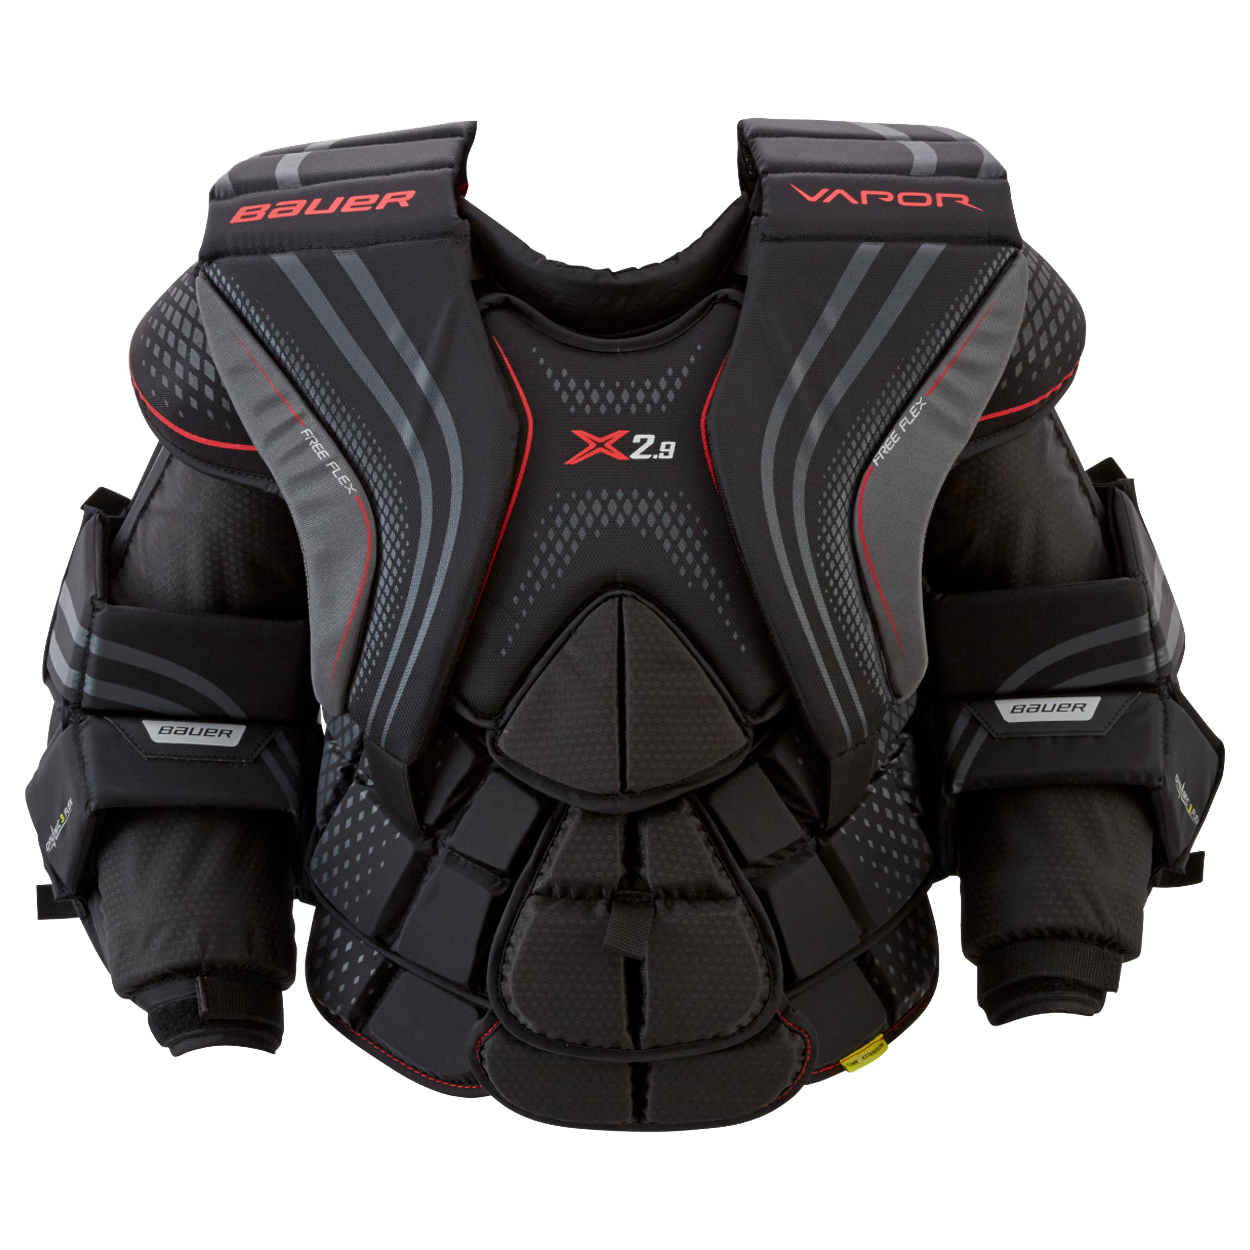 Vapor X2.9 Chest Protector Intermediate,,Размер M